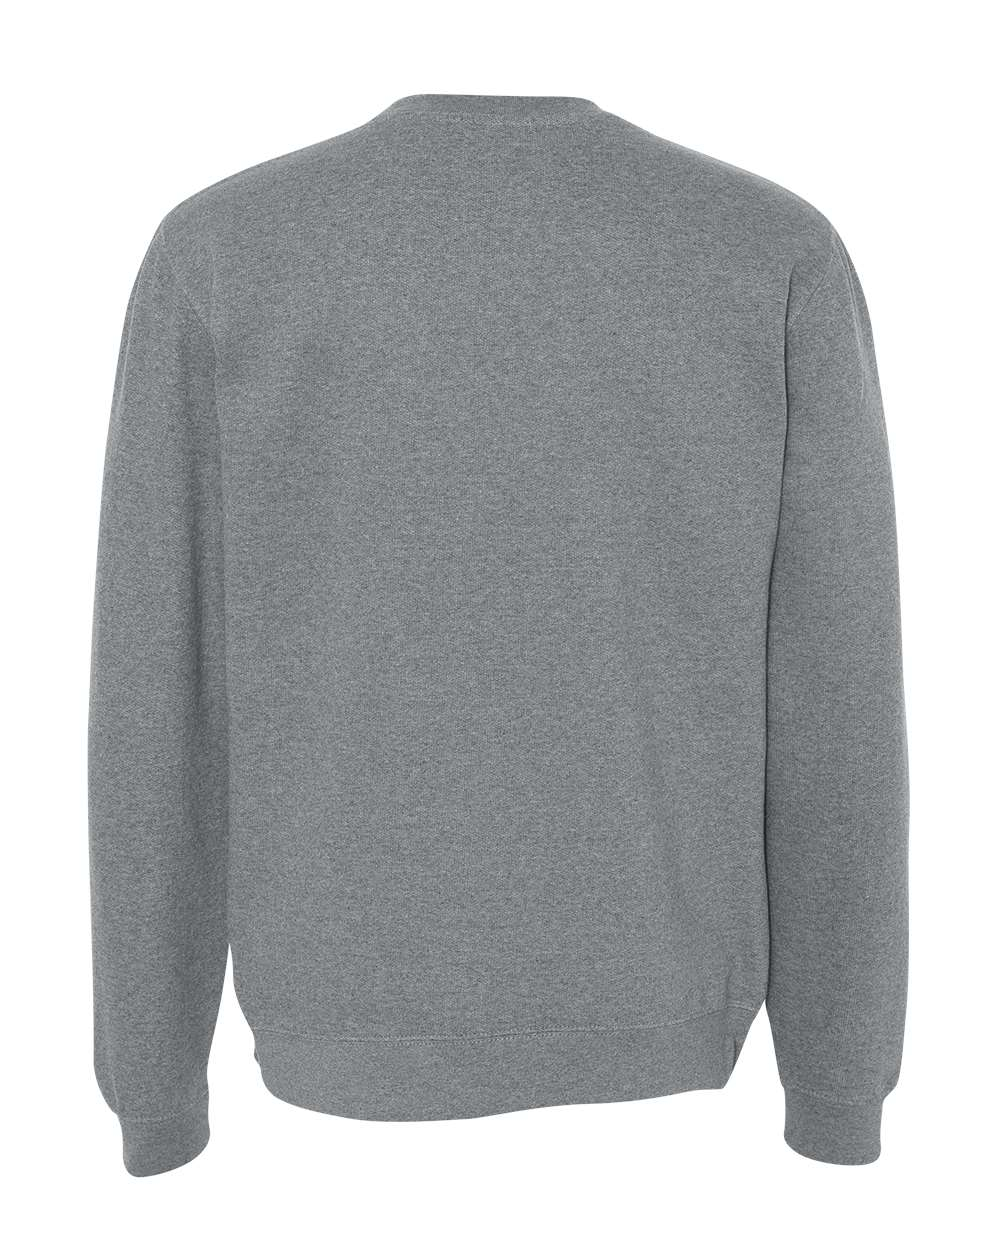 Independent-Trading-Co-Midweight-Crewneck-Sweatshirt-SS3000-up-to-3XL miniature 28